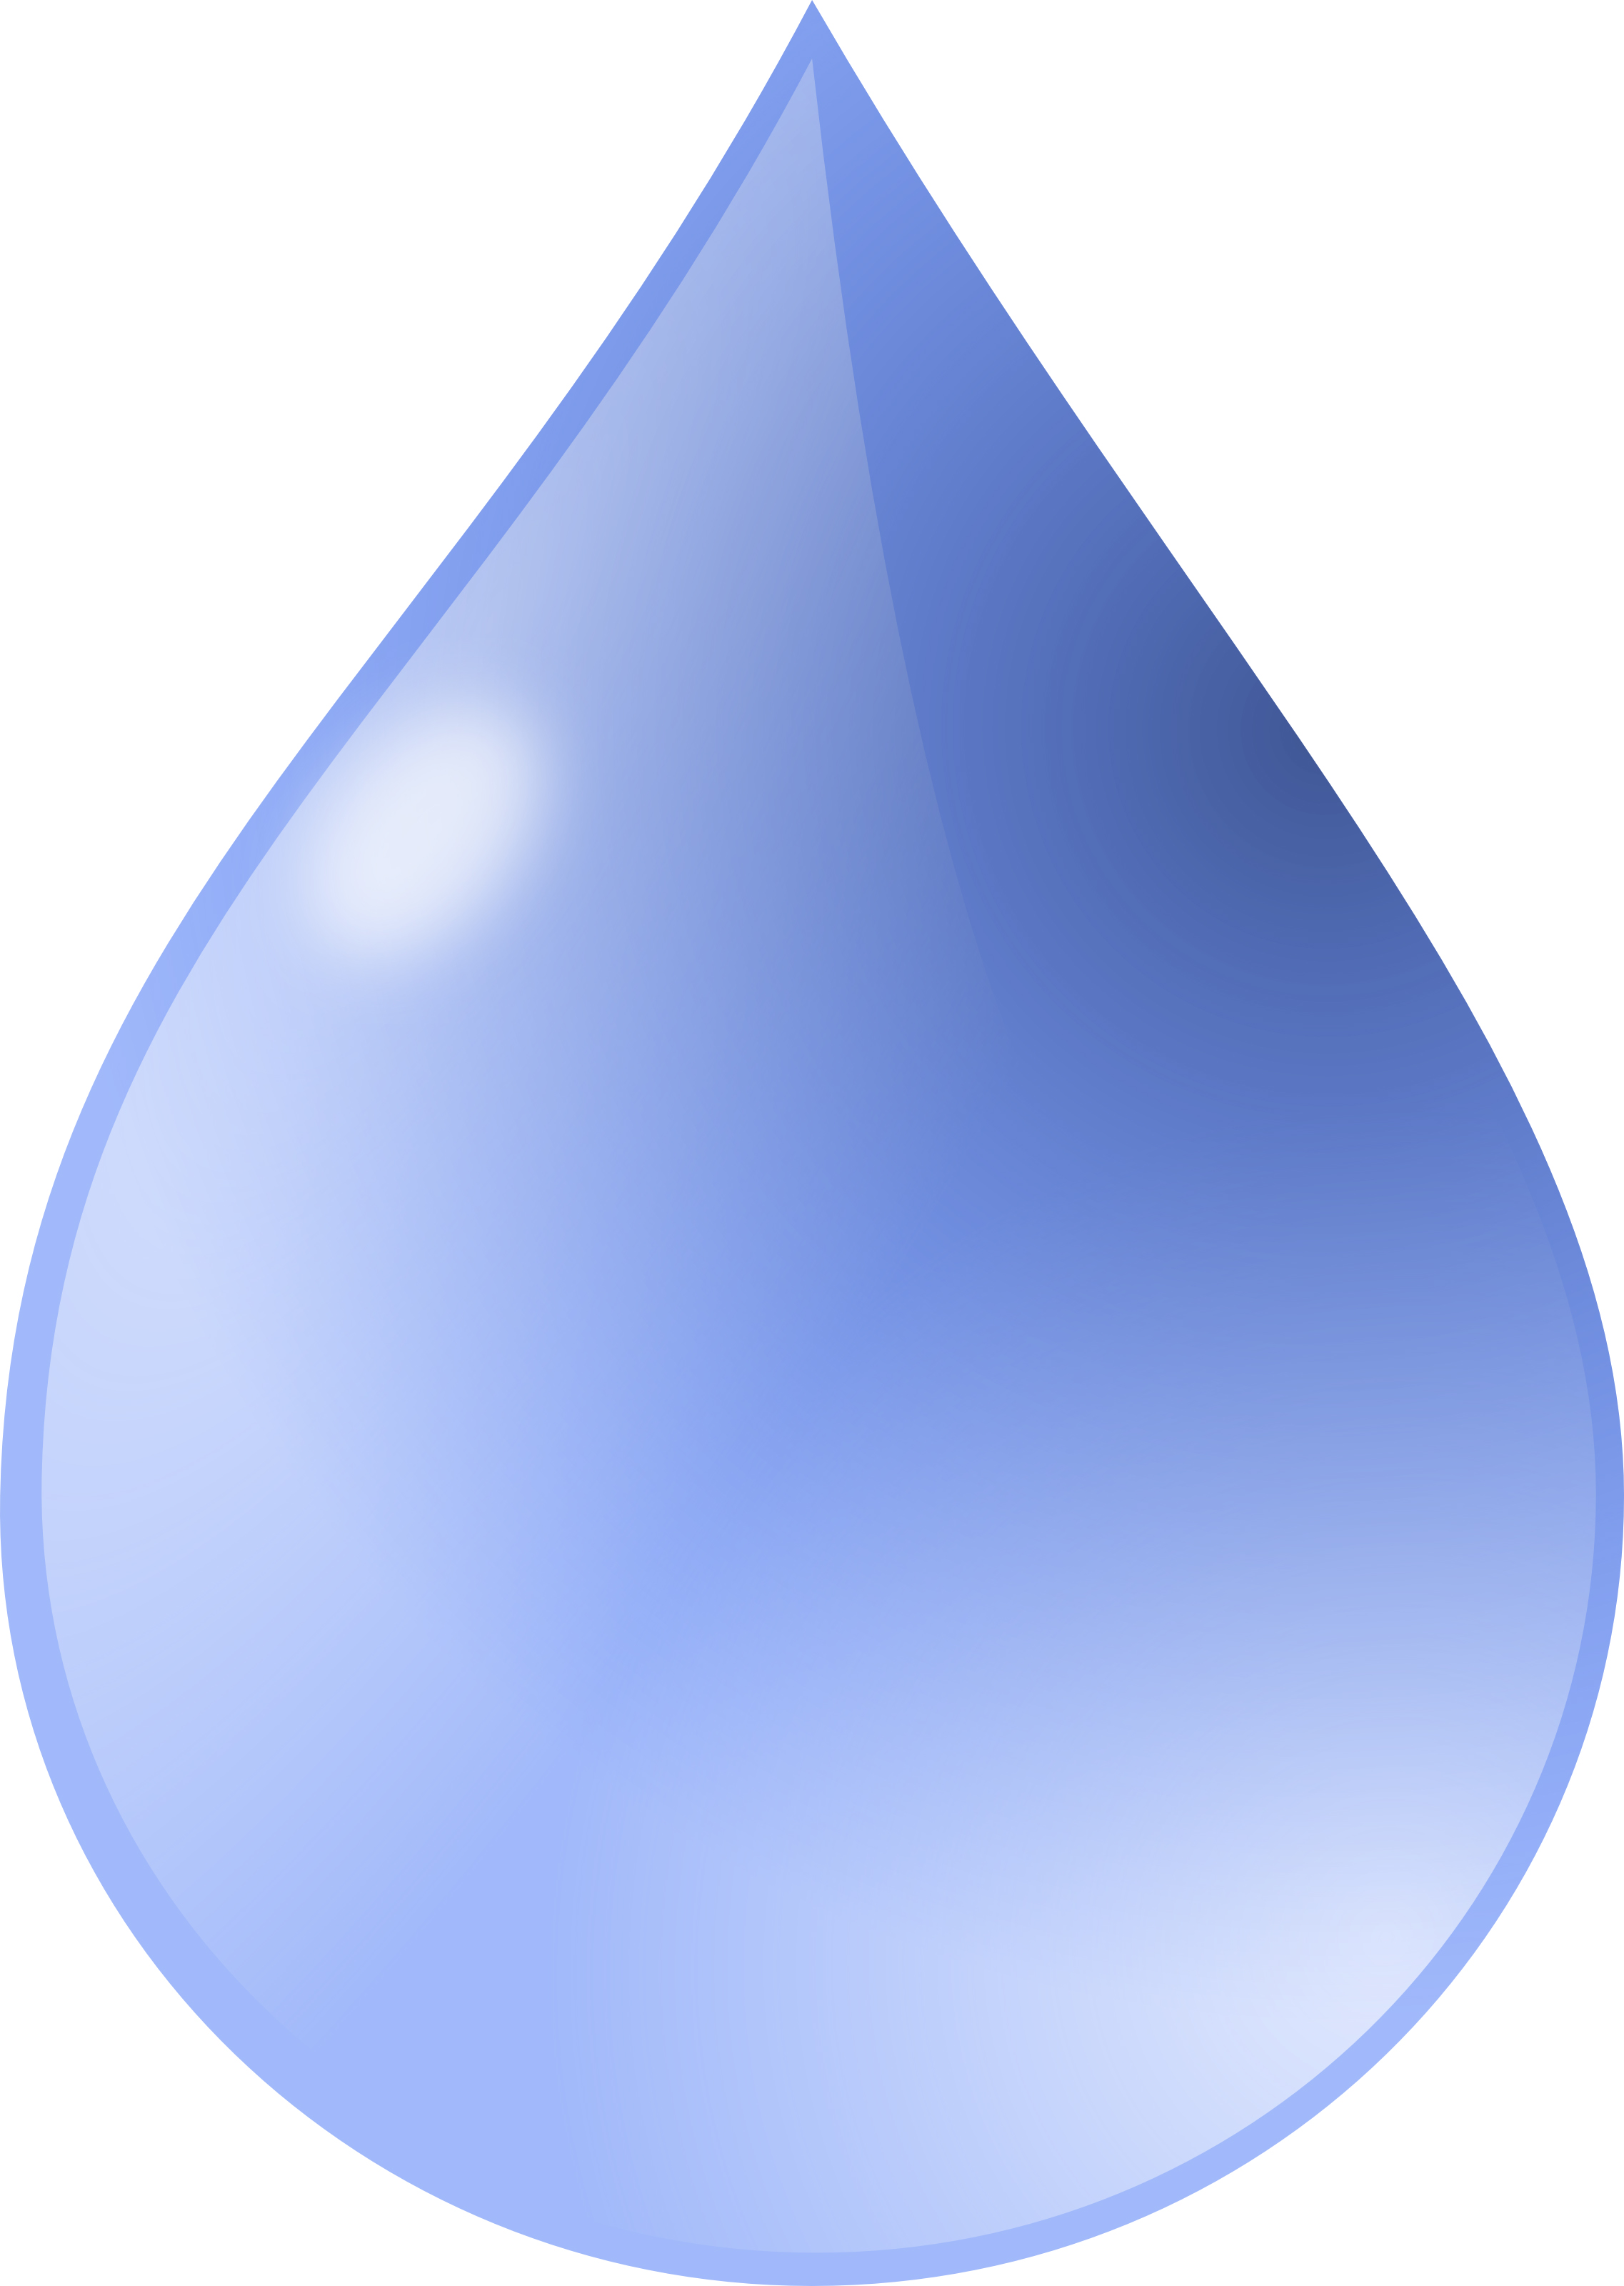 Water clip art free clipart images 3.